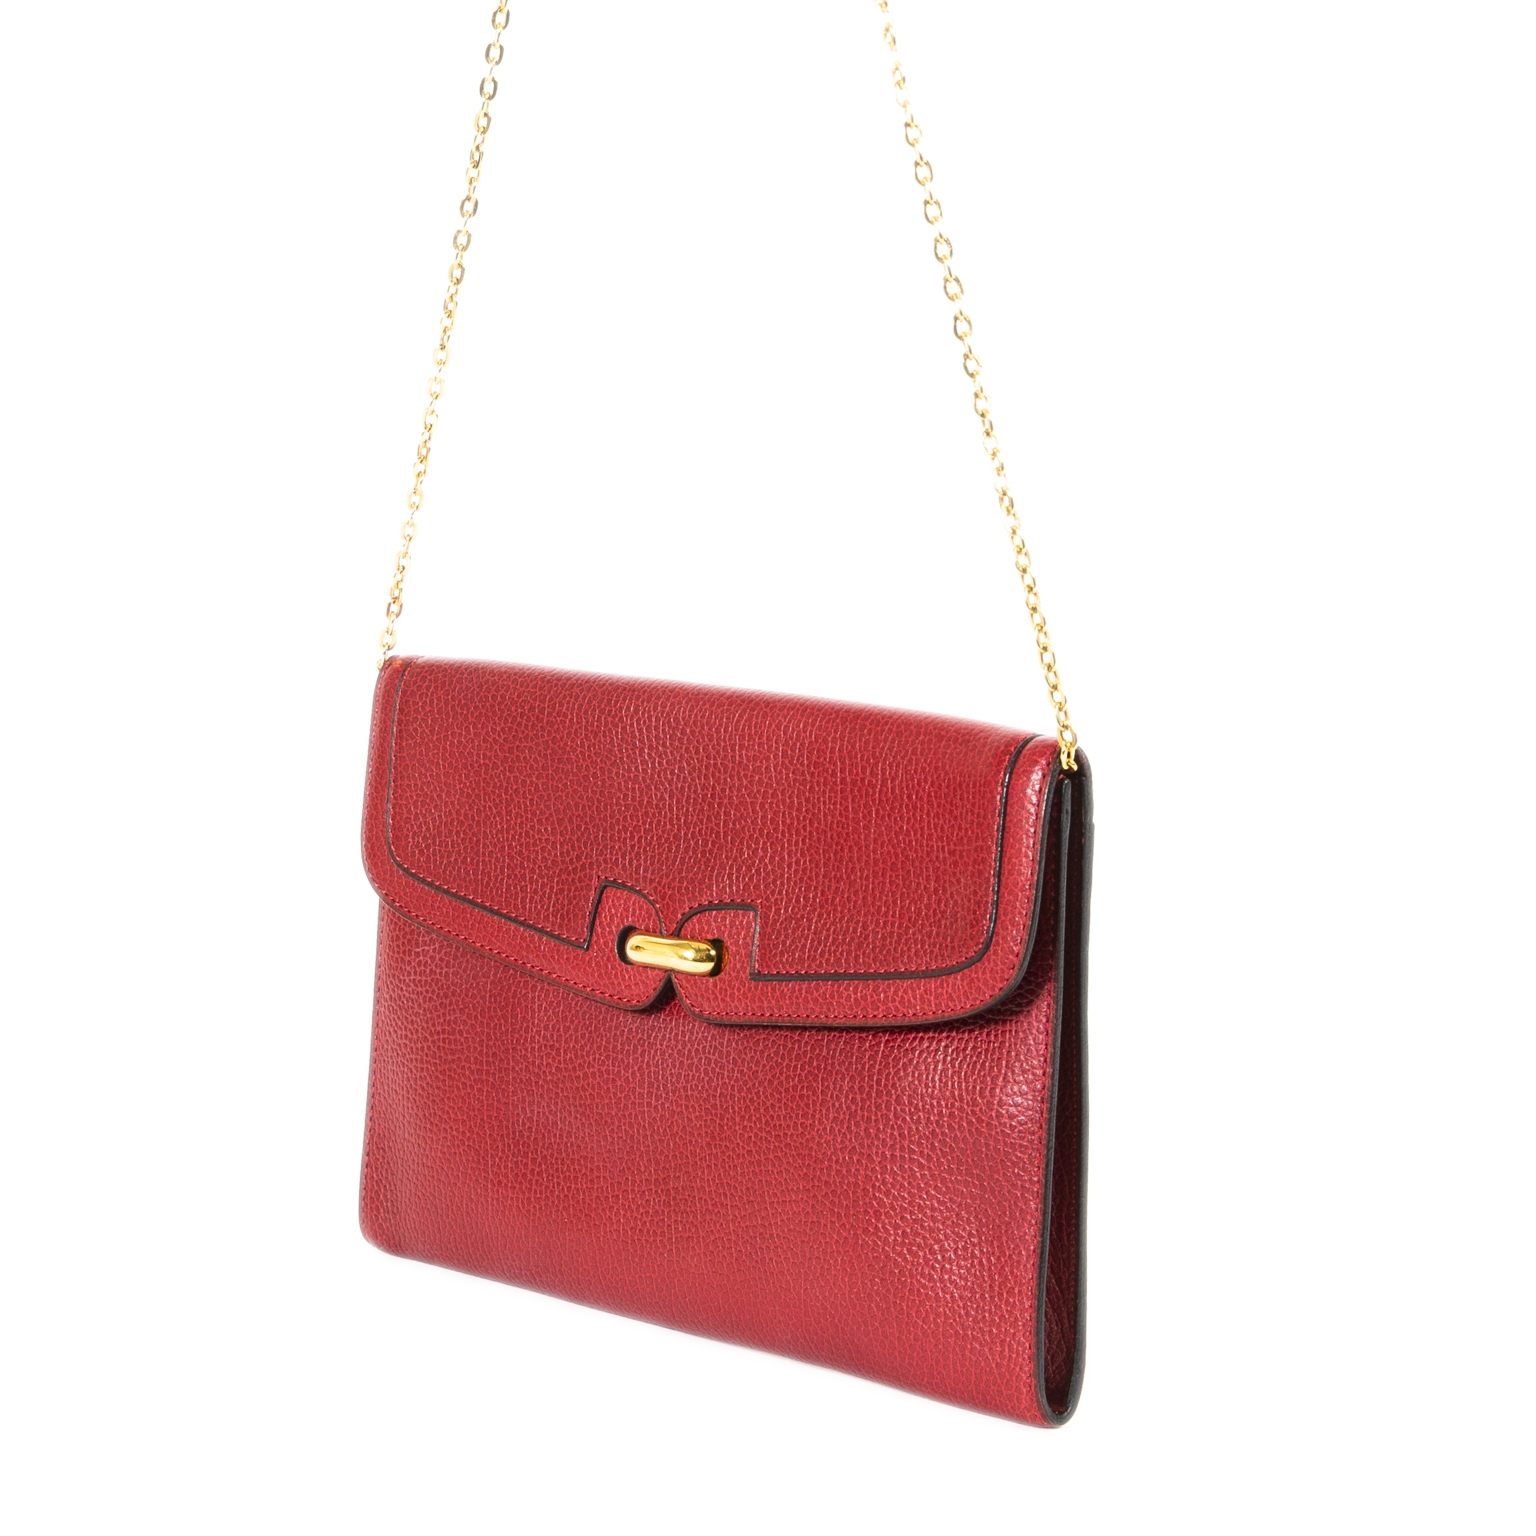 delvaux red leather clutch now for sale at labellov vintage fashion webshop belgium